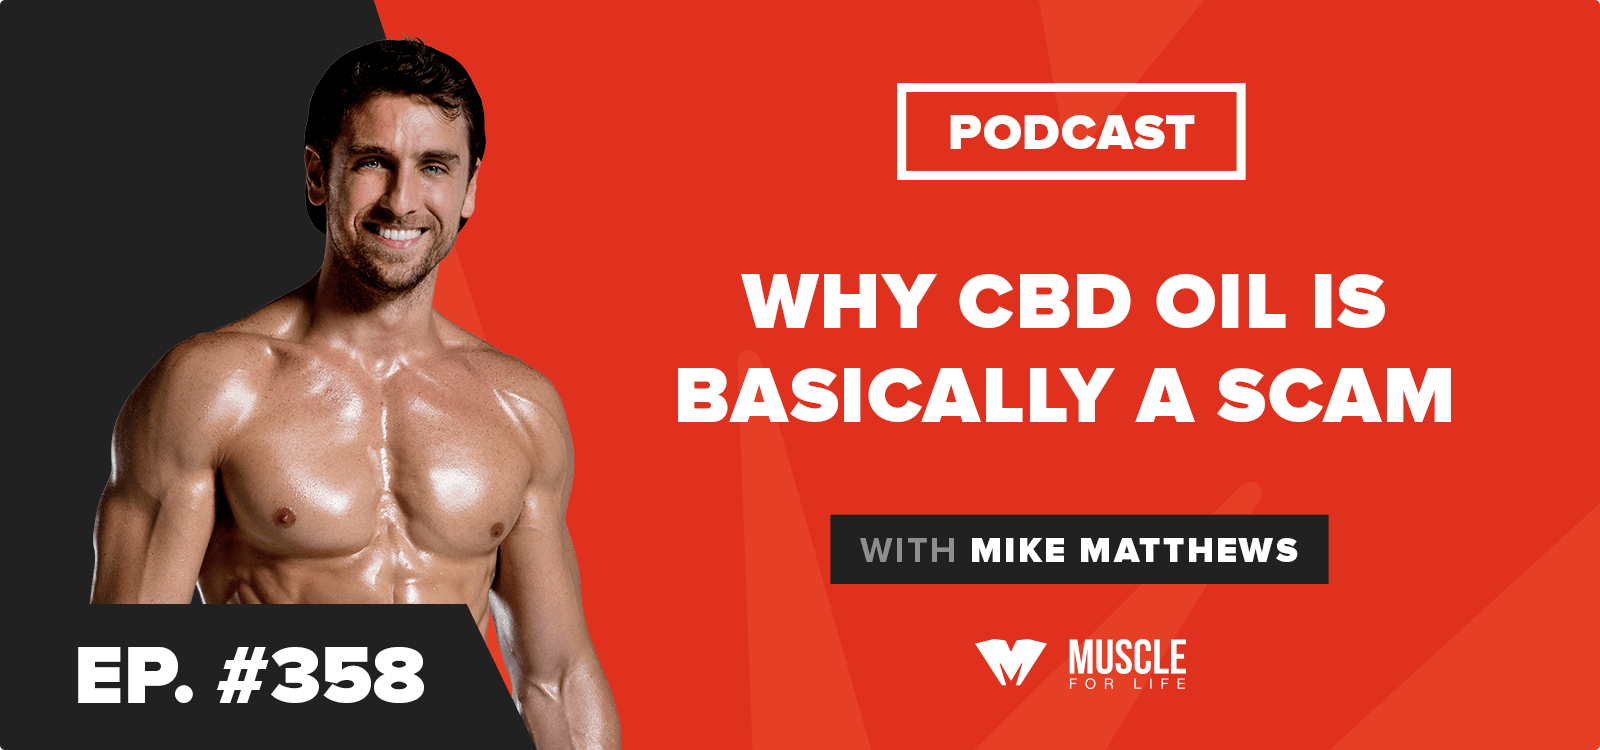 Why CBD Oil Is Basically a Scam